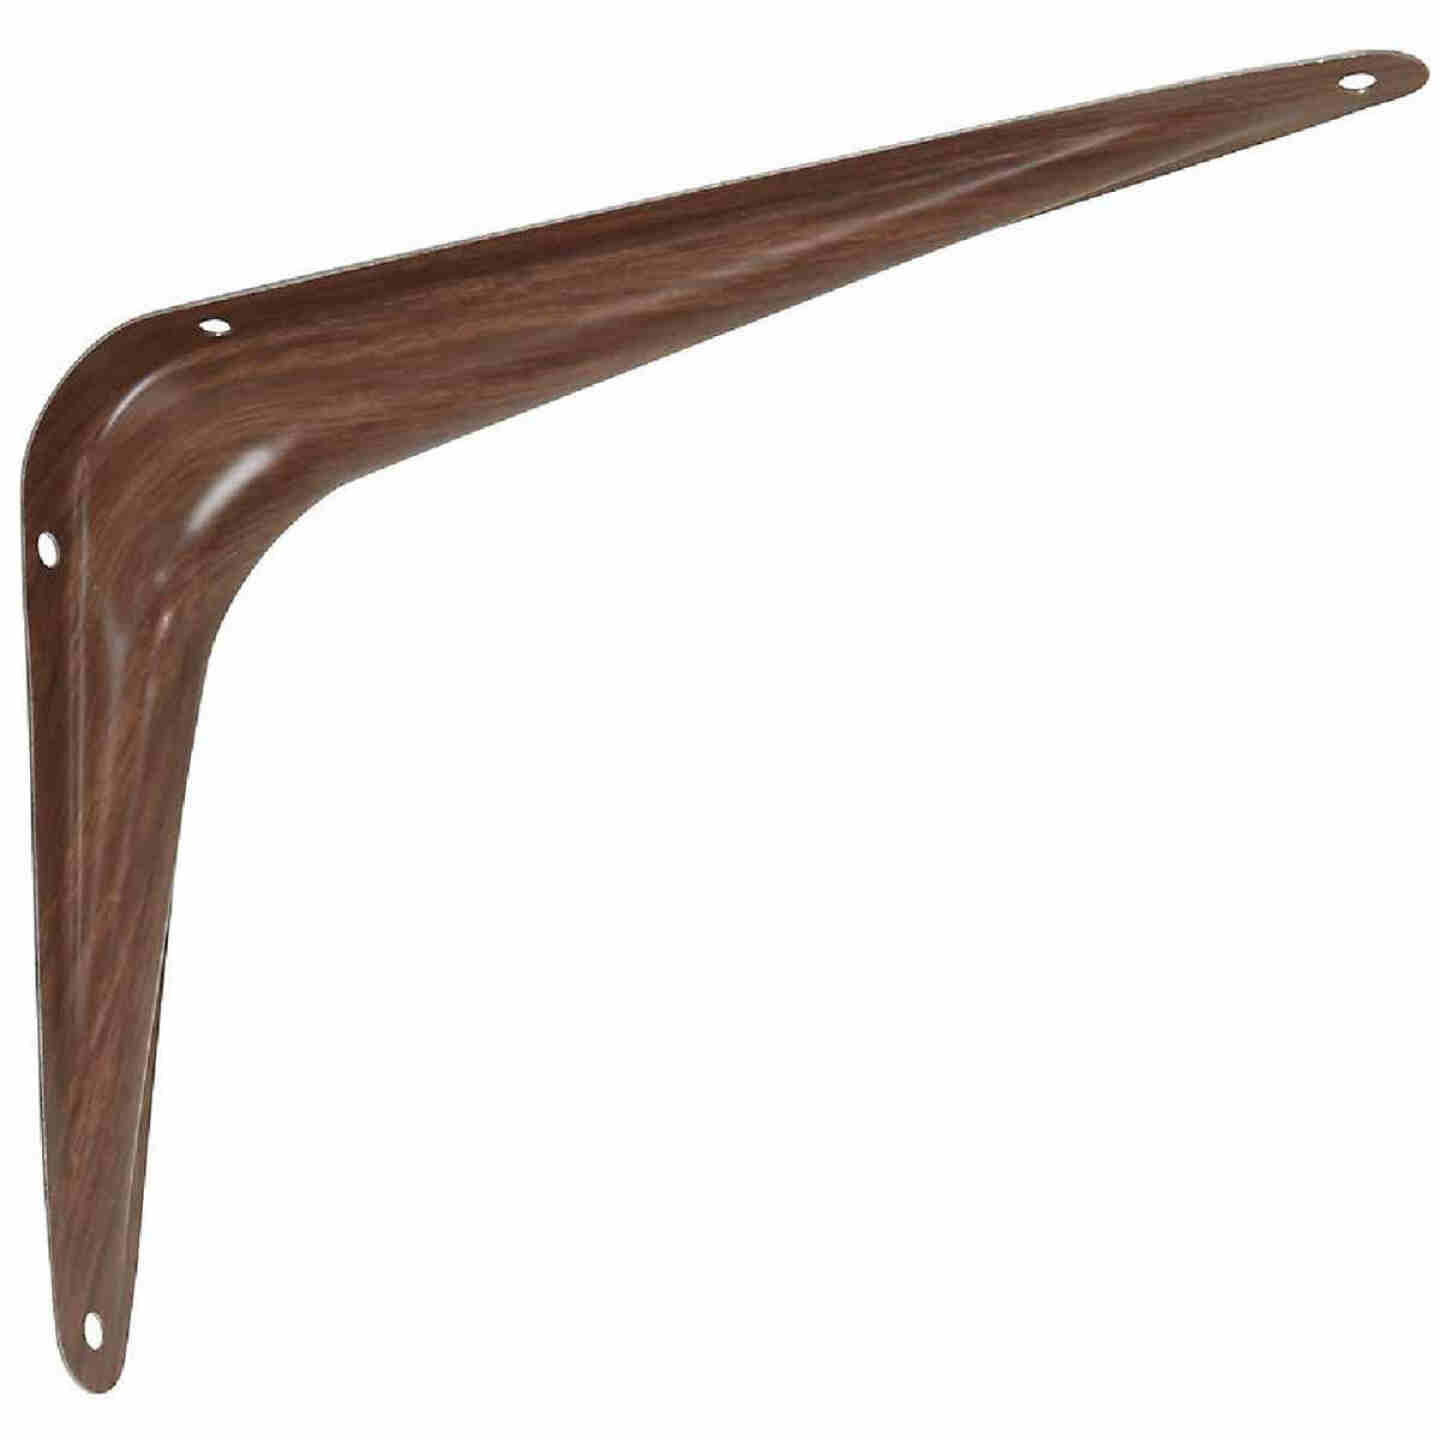 National 211 6 In. D. x 8 In. H. Fruitwood Steel Shelf Bracket Image 1